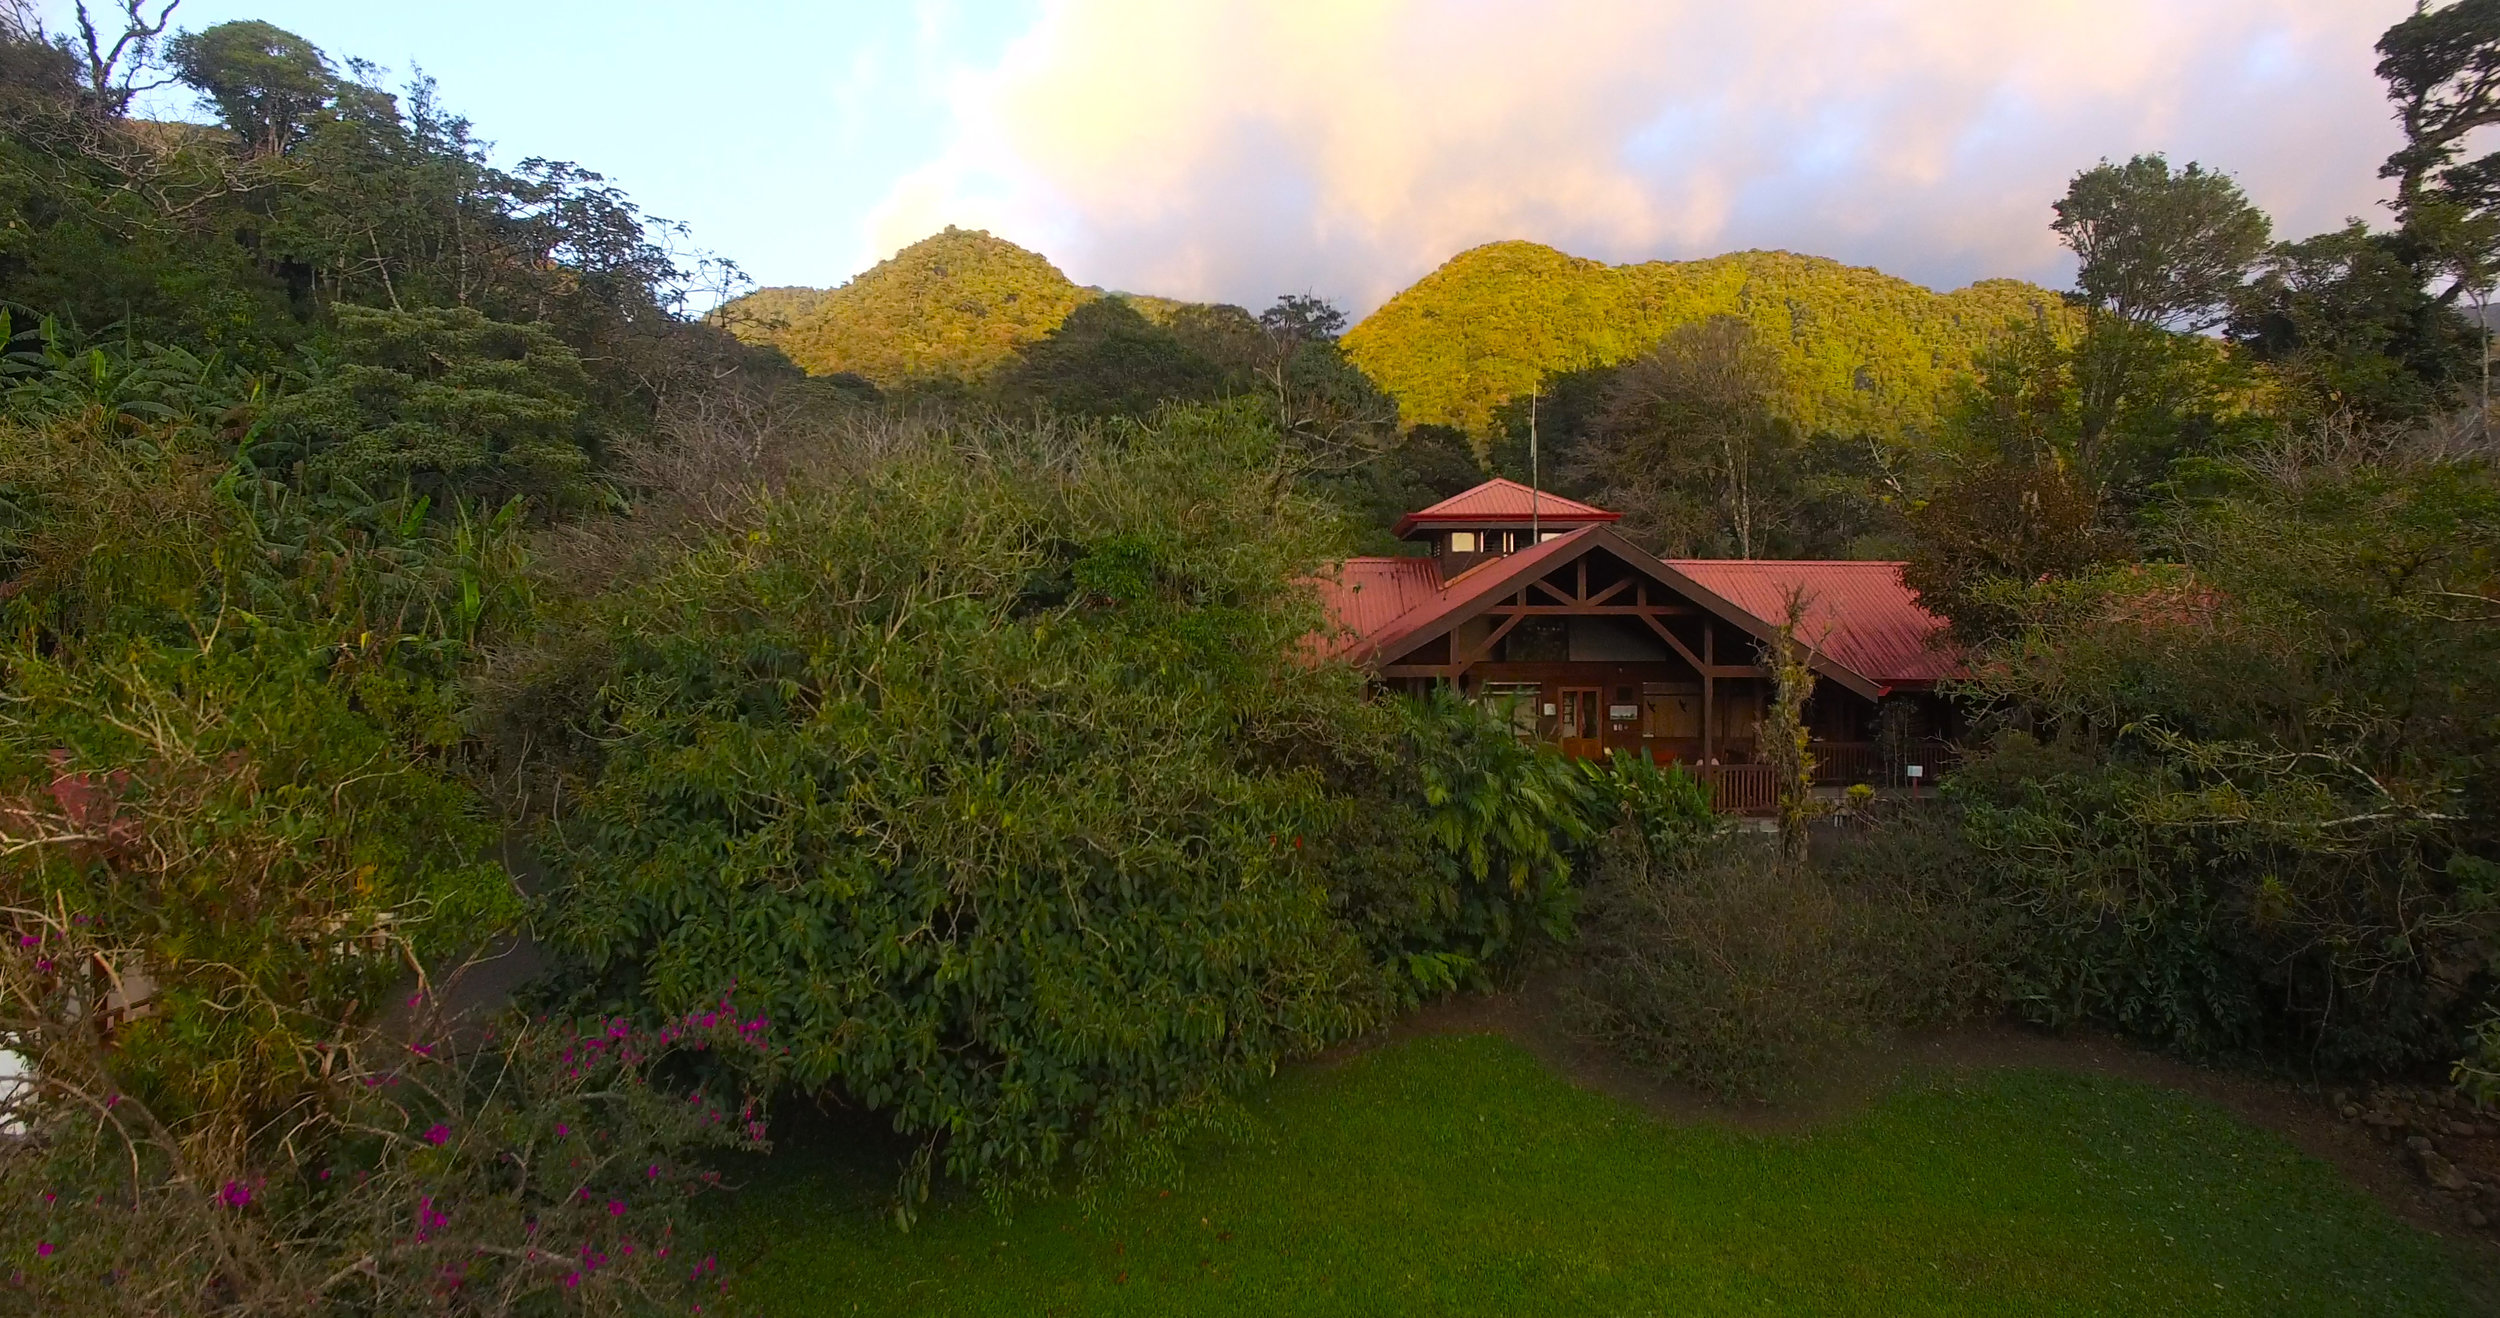 Student Union and Monteverde Cloud Forest Preserve in the background